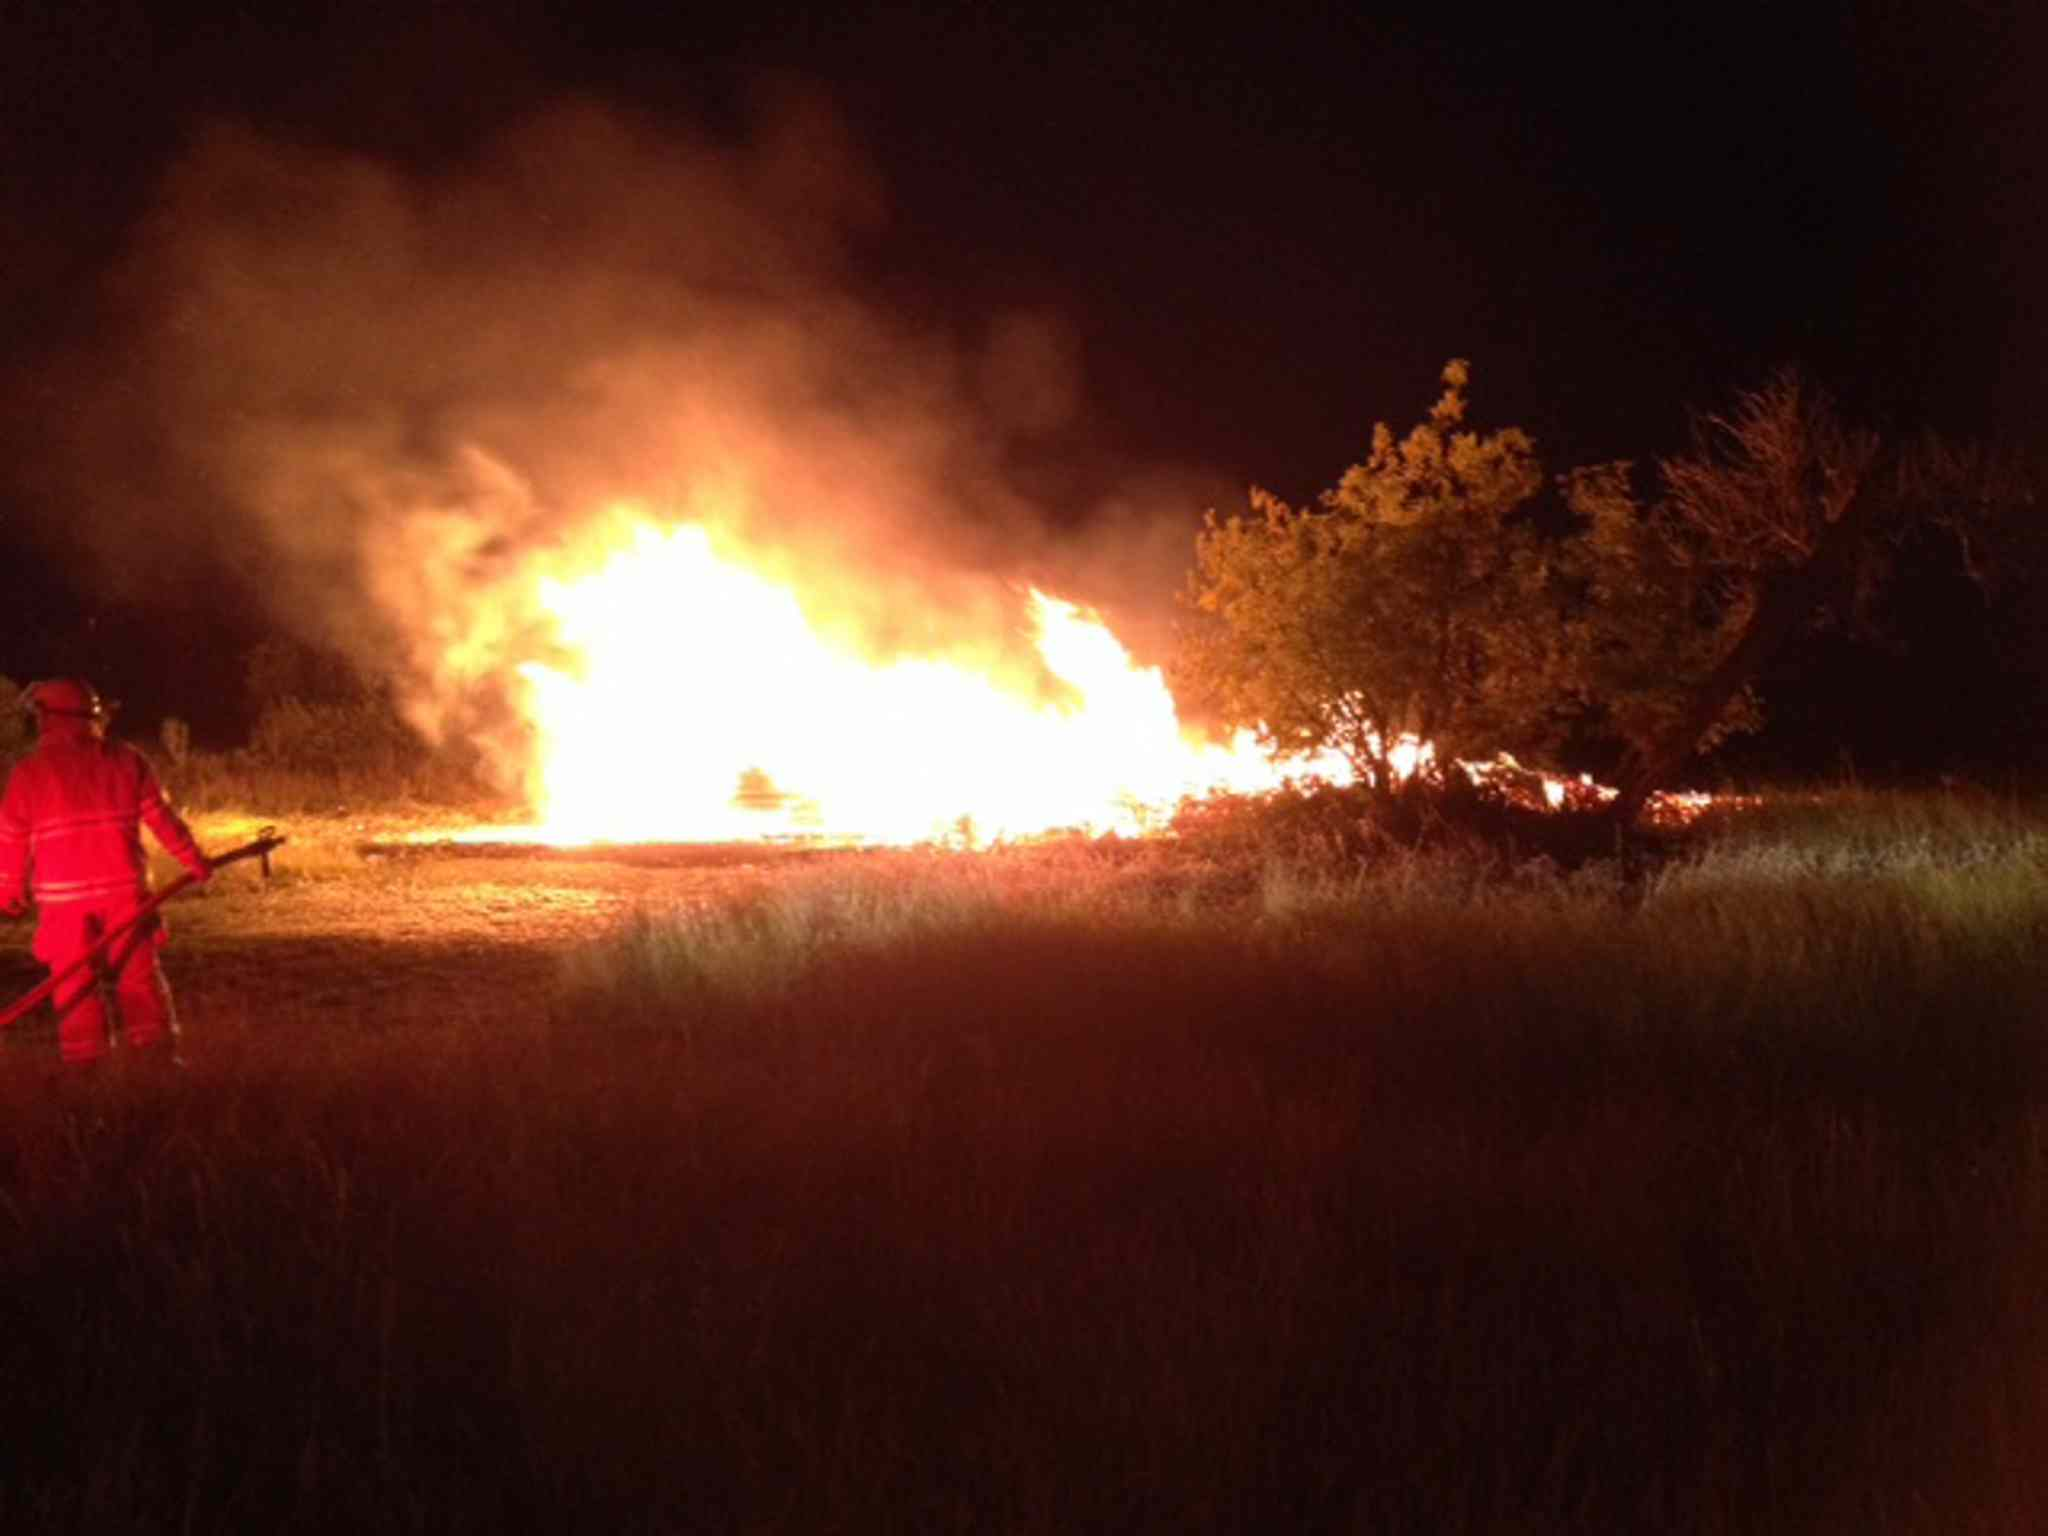 Blue Hills RCMP received a report about a fire at the The Criddle-Vane homestead around 10 p.m. Wednesday